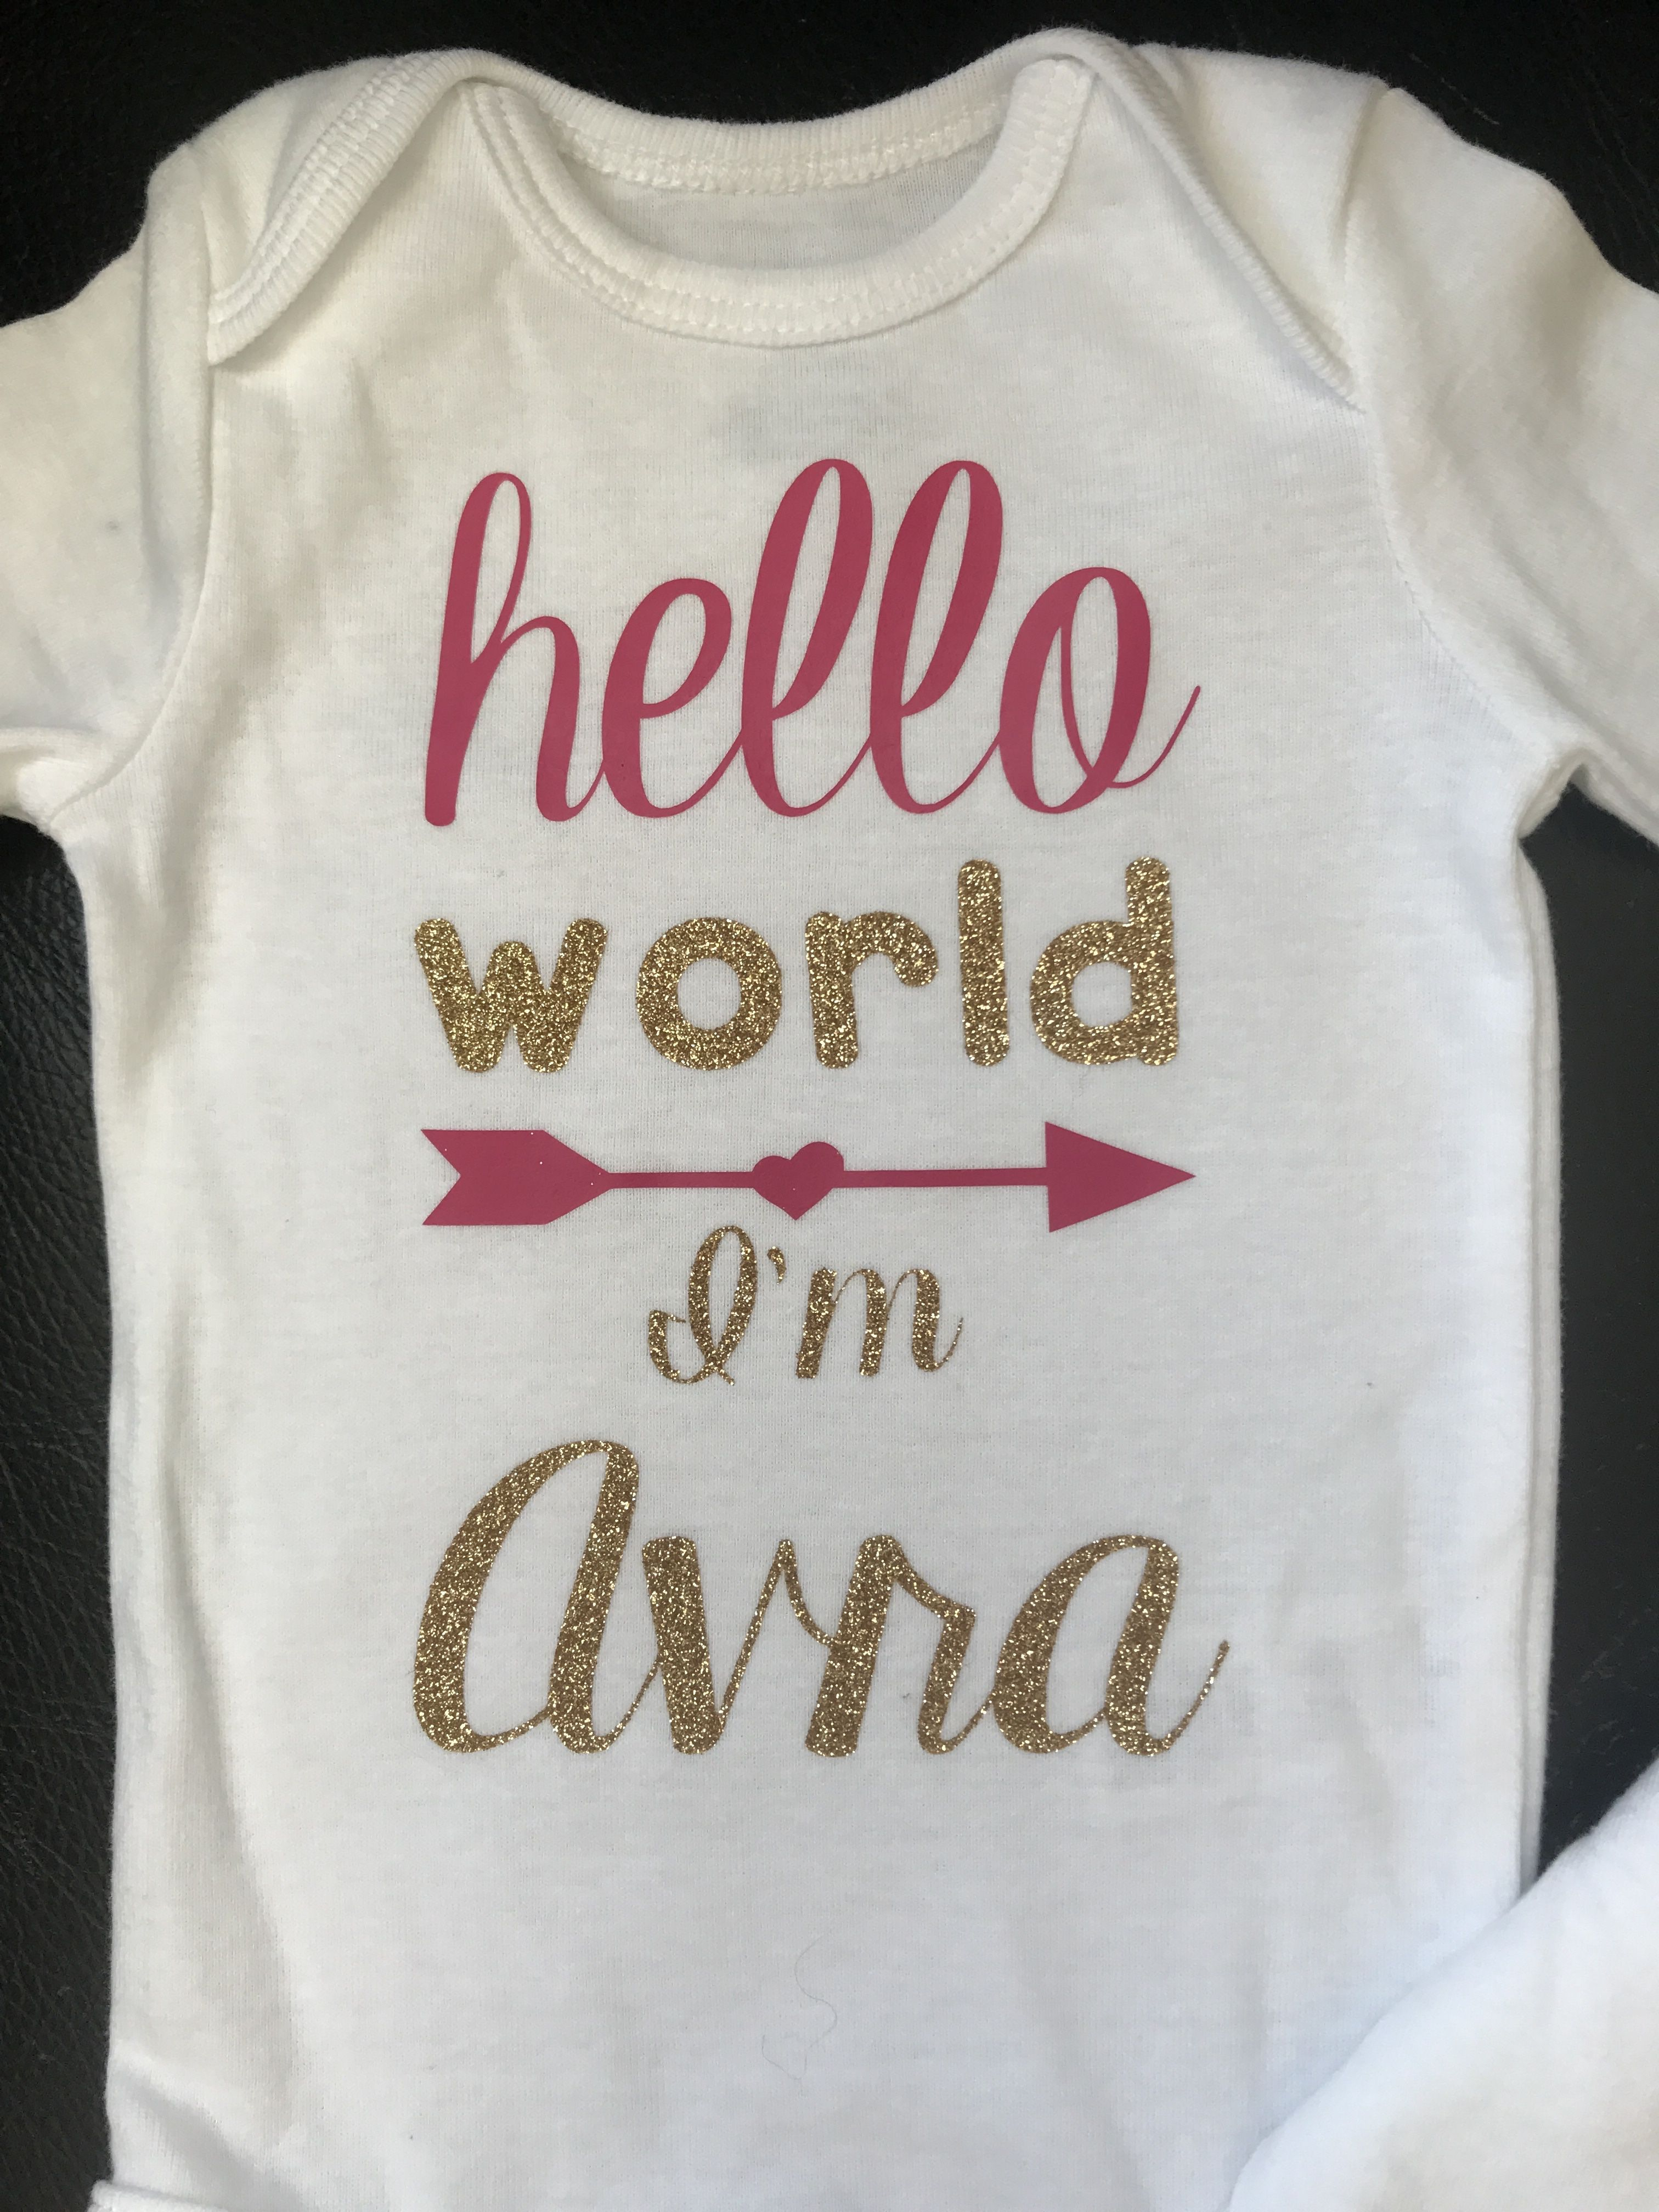 7831e382a713 Hello World Onesie   Newborn Photo Outfit Boy   Girl   Personalized ...